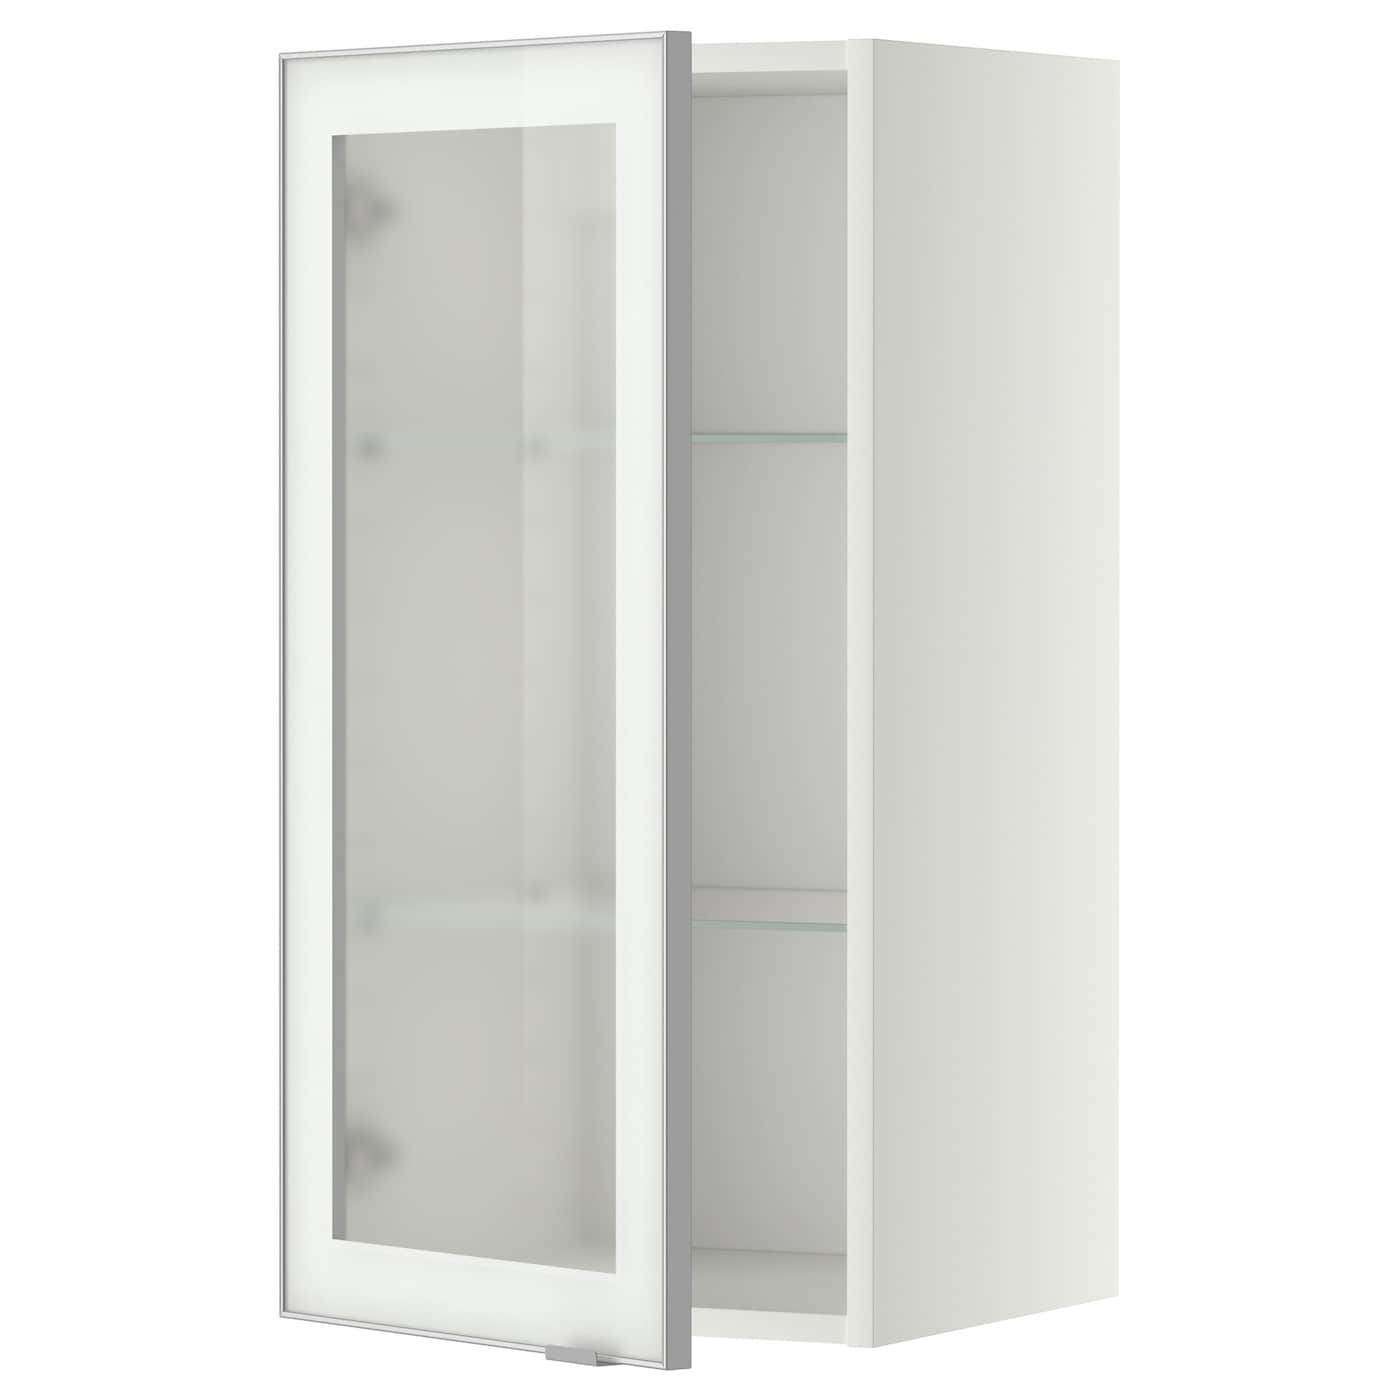 Metod Wall Cabinet W Shelves Glass Door White Jutis